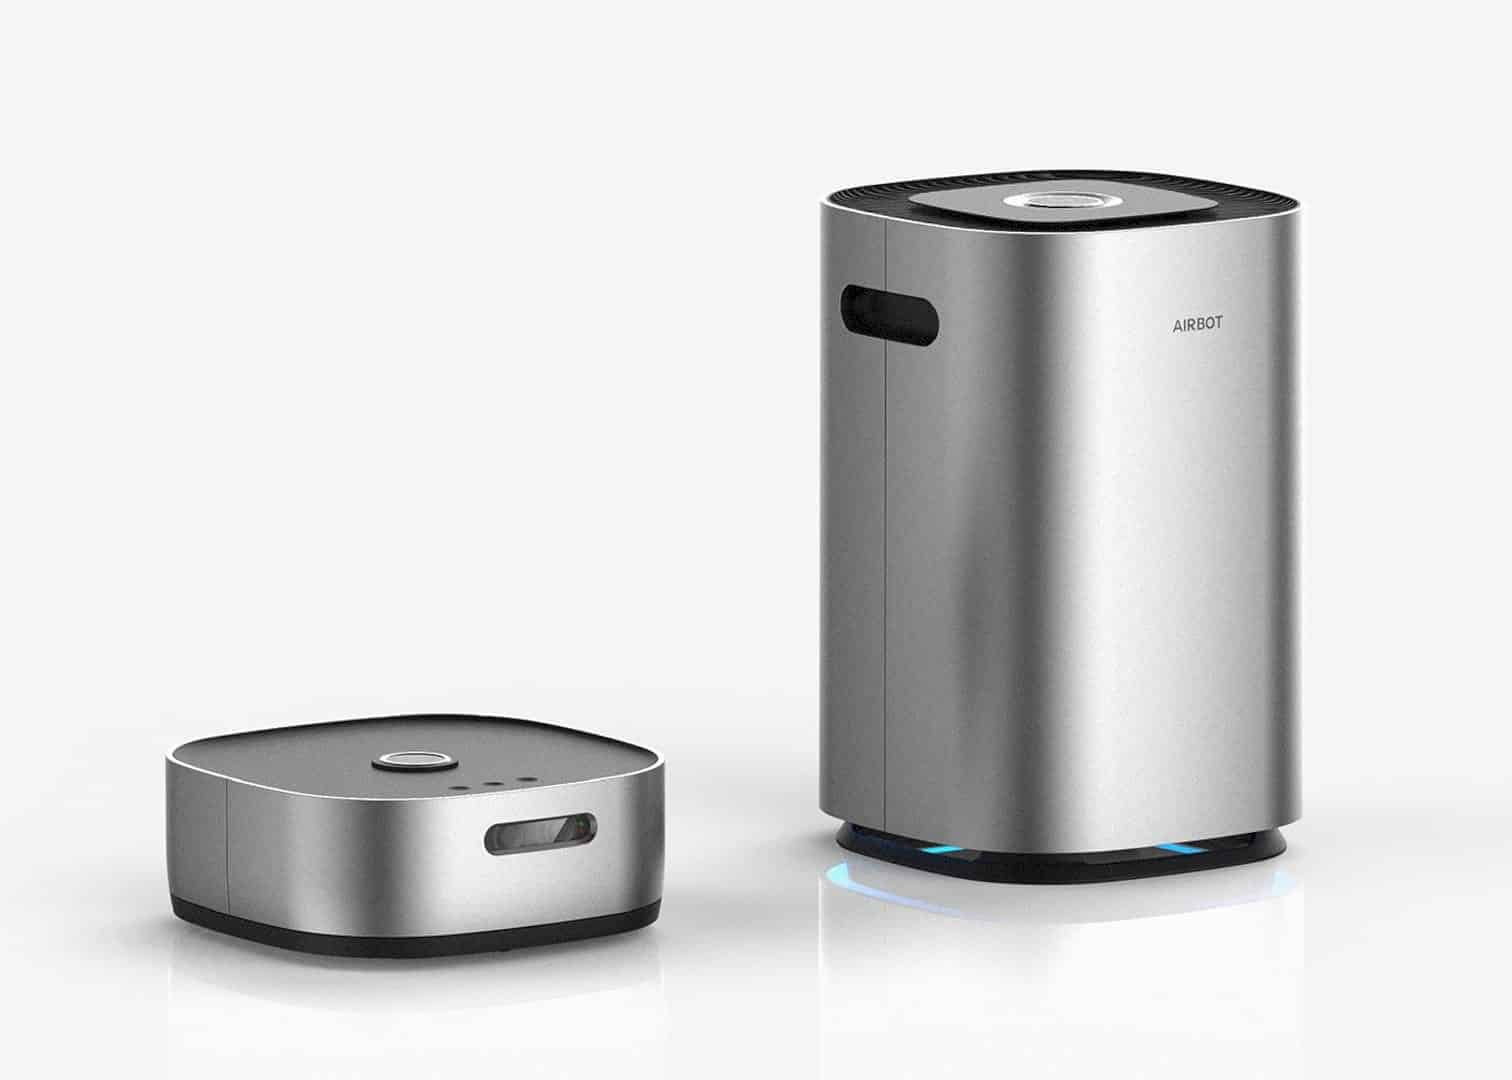 AIRBOT: A Smart Air Purifier with Vacuum Cleaner Combination for An Easy Move